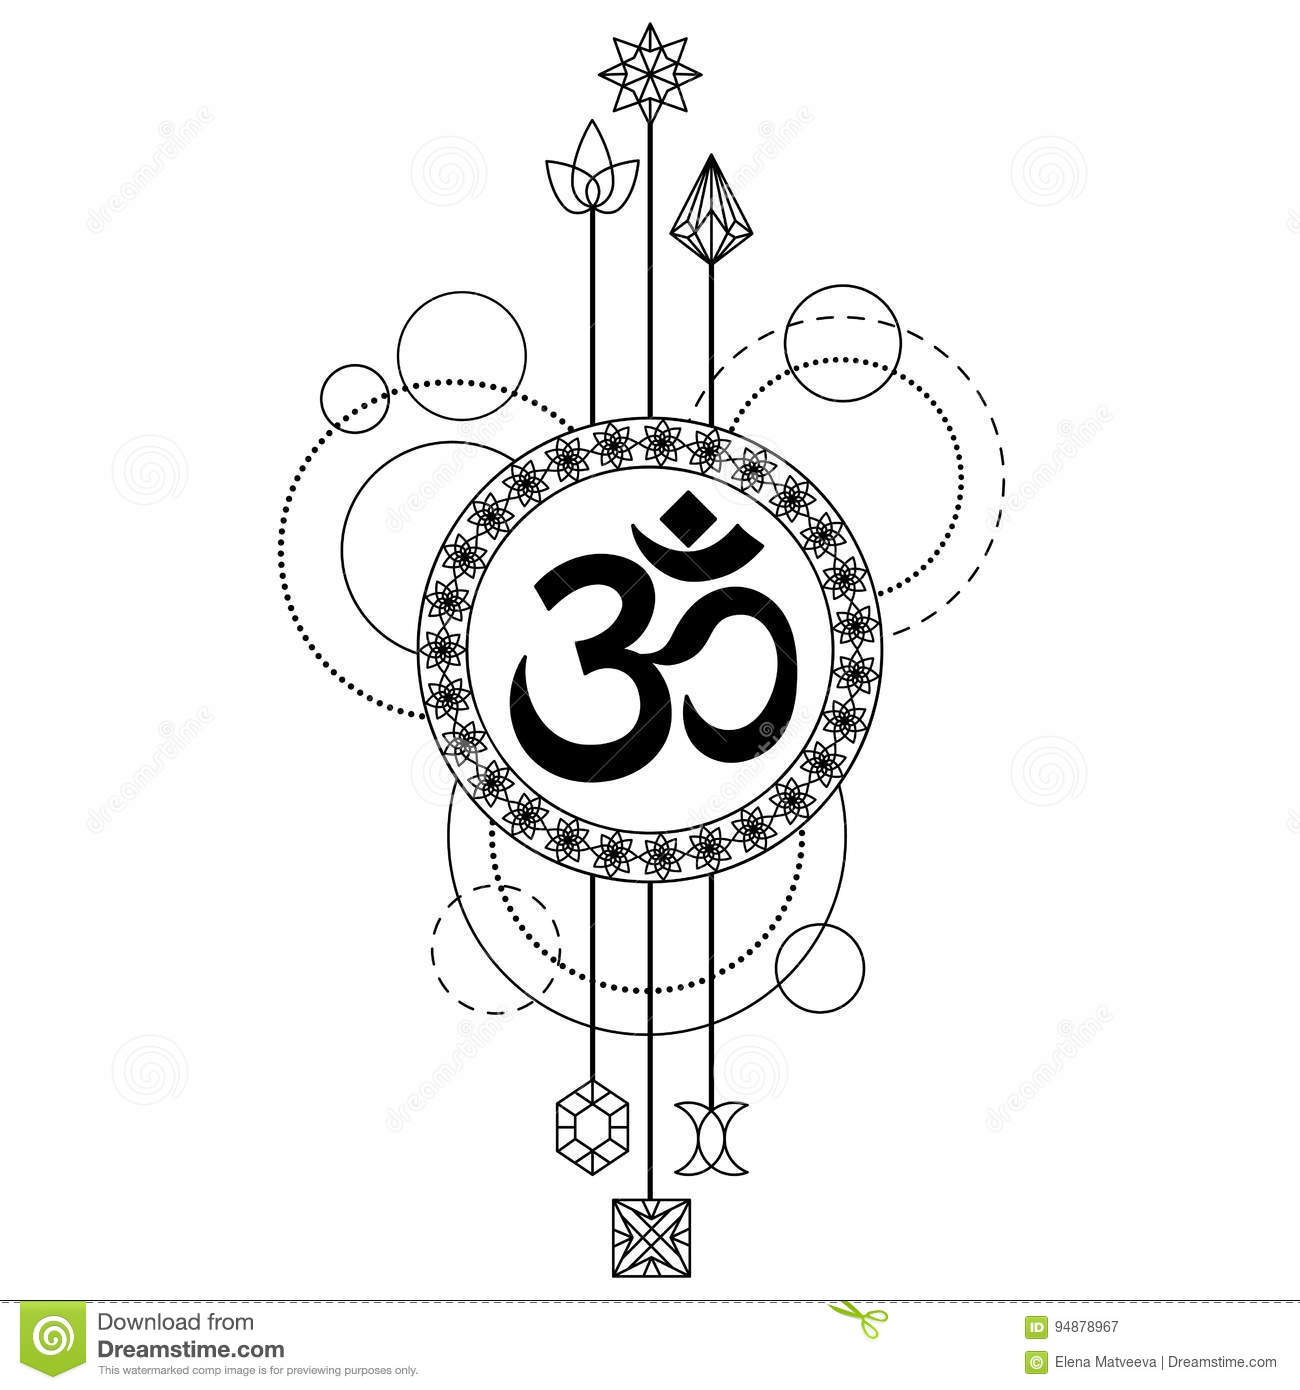 39eaeb0e6 Tattoo with mantra Om abstract composition on white background. Modern  symbol, textile print, coloring page.